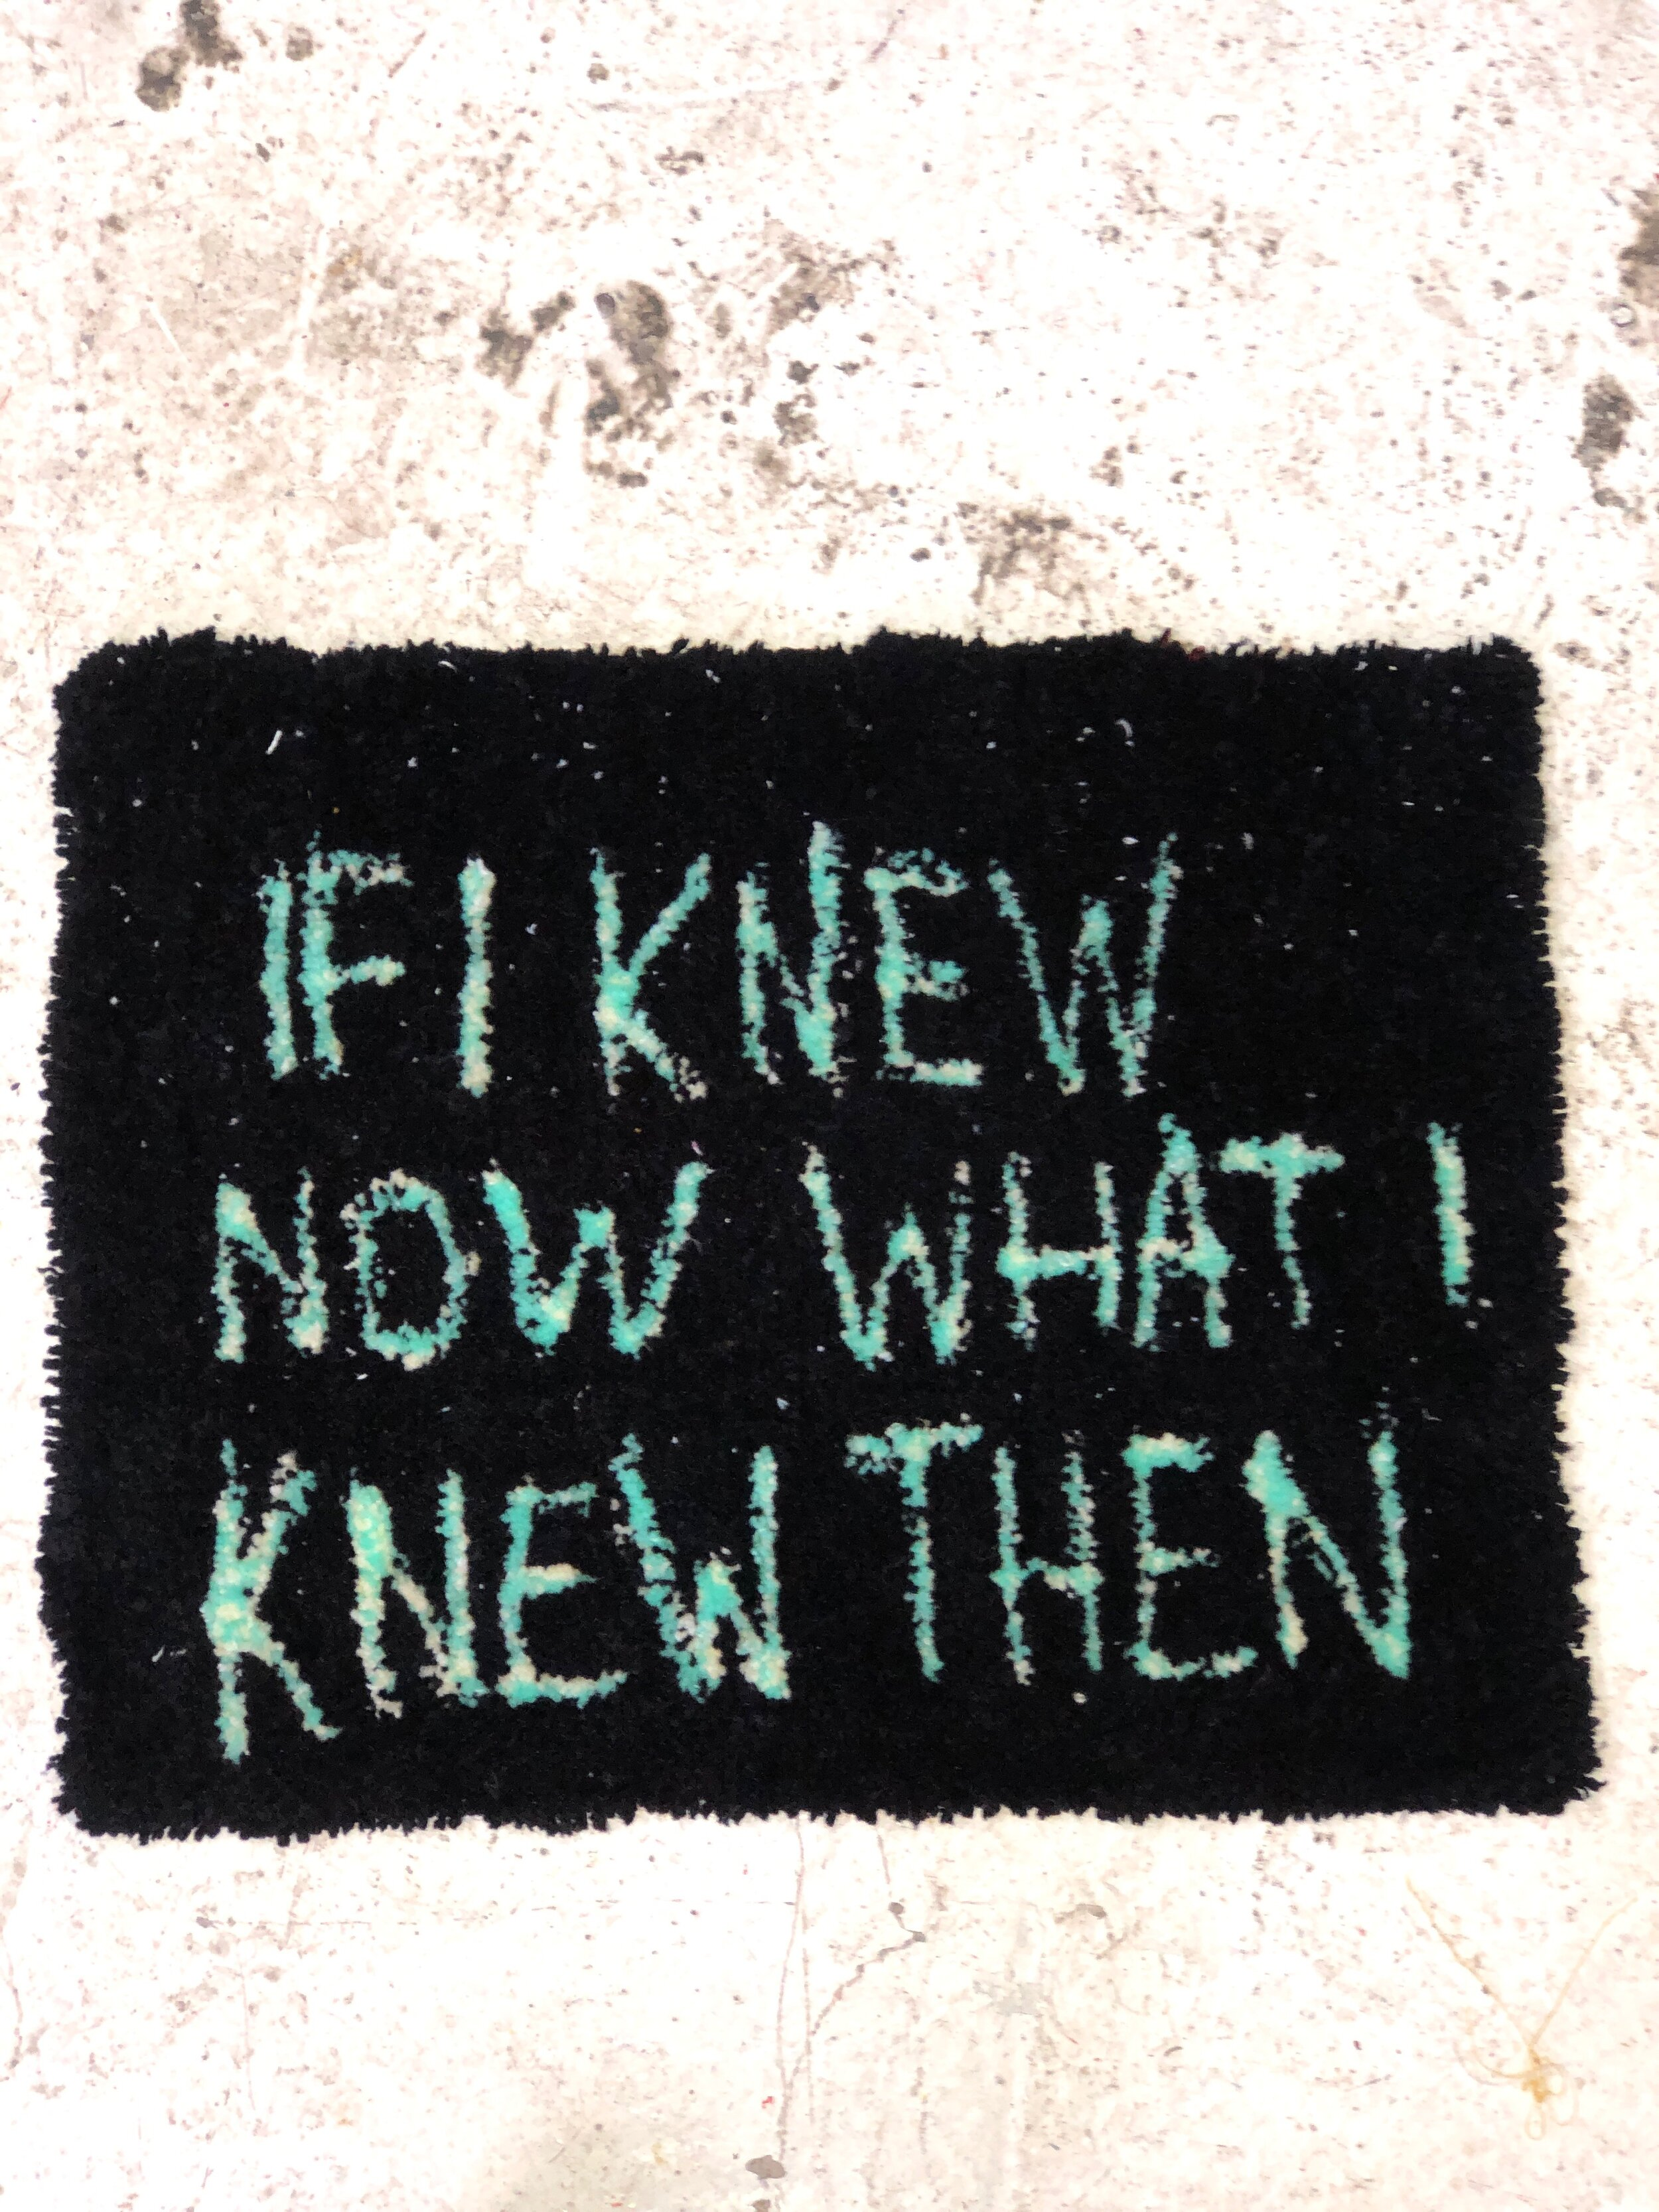 I KNOW I KNOW - SEPTEMBER 2019 *   SOLD   *